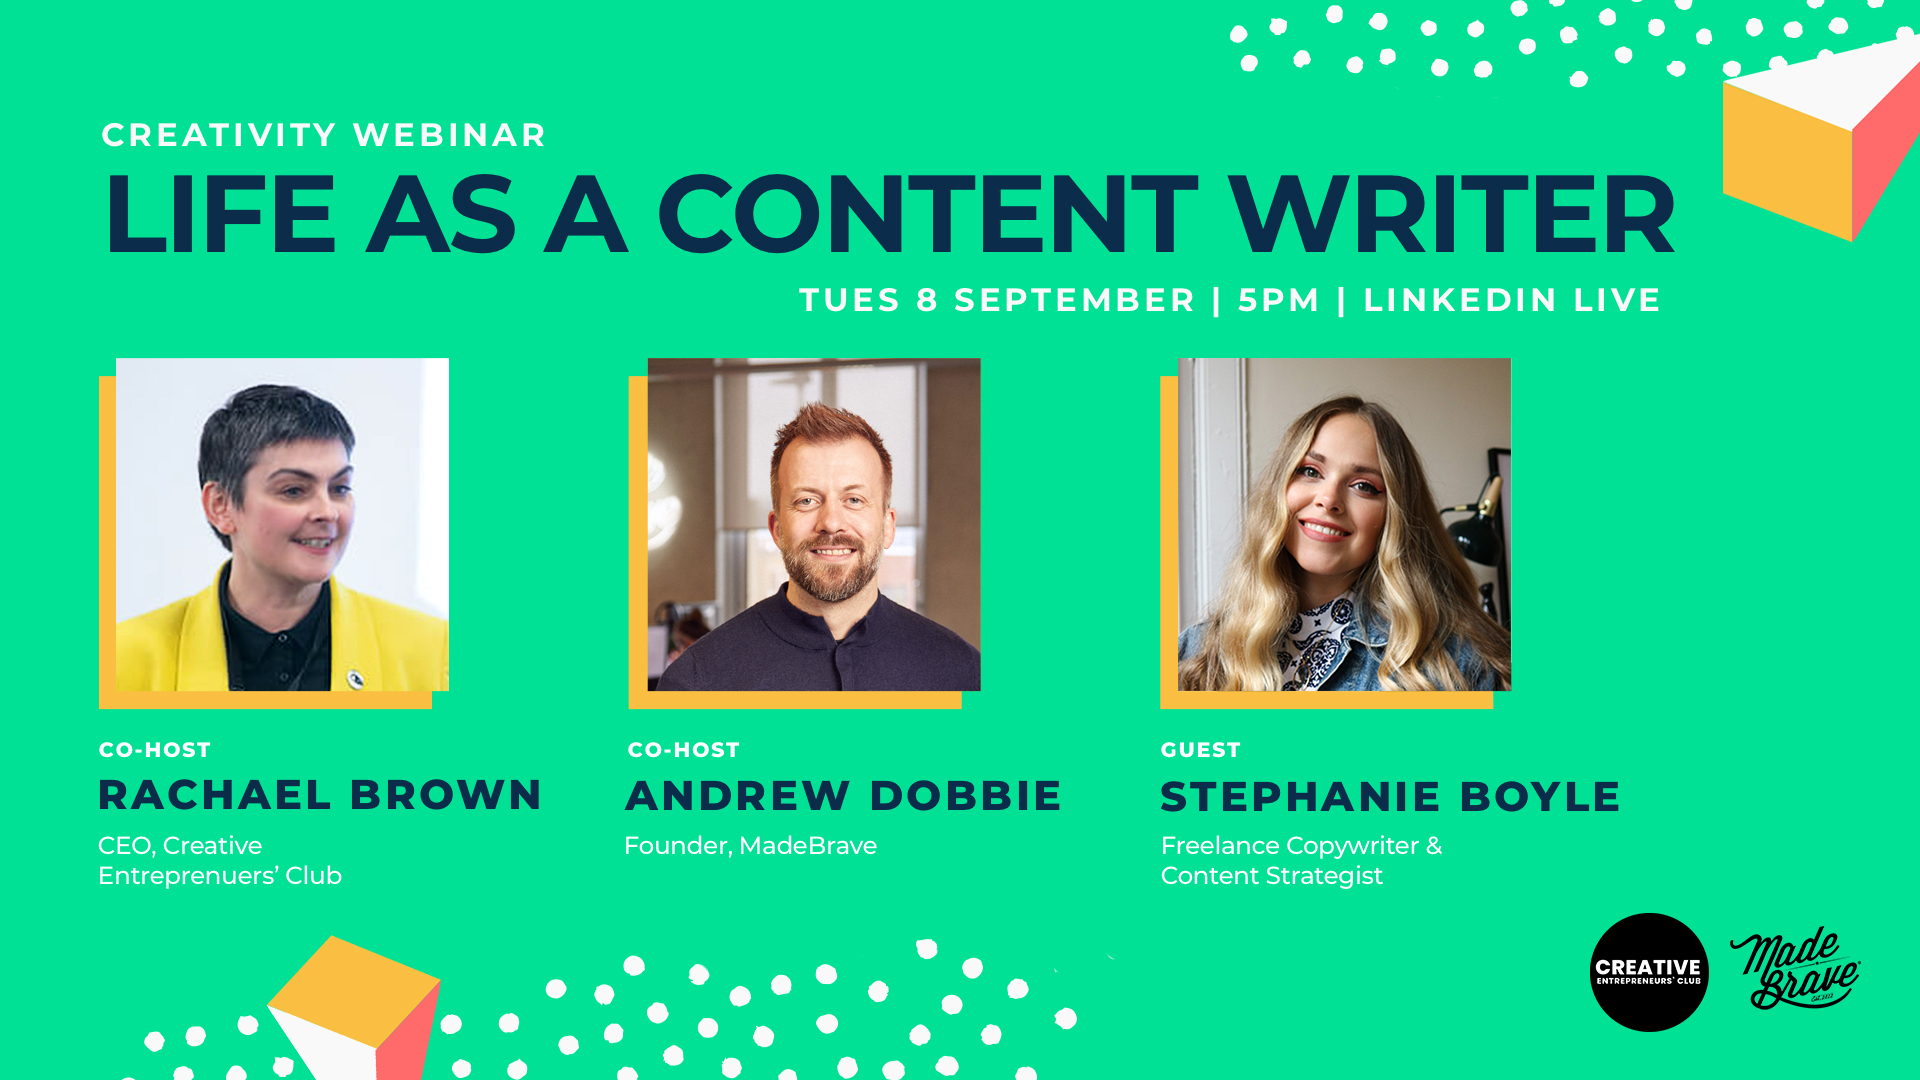 Life as a content writer with Stephanie Boyle & MadeBrave